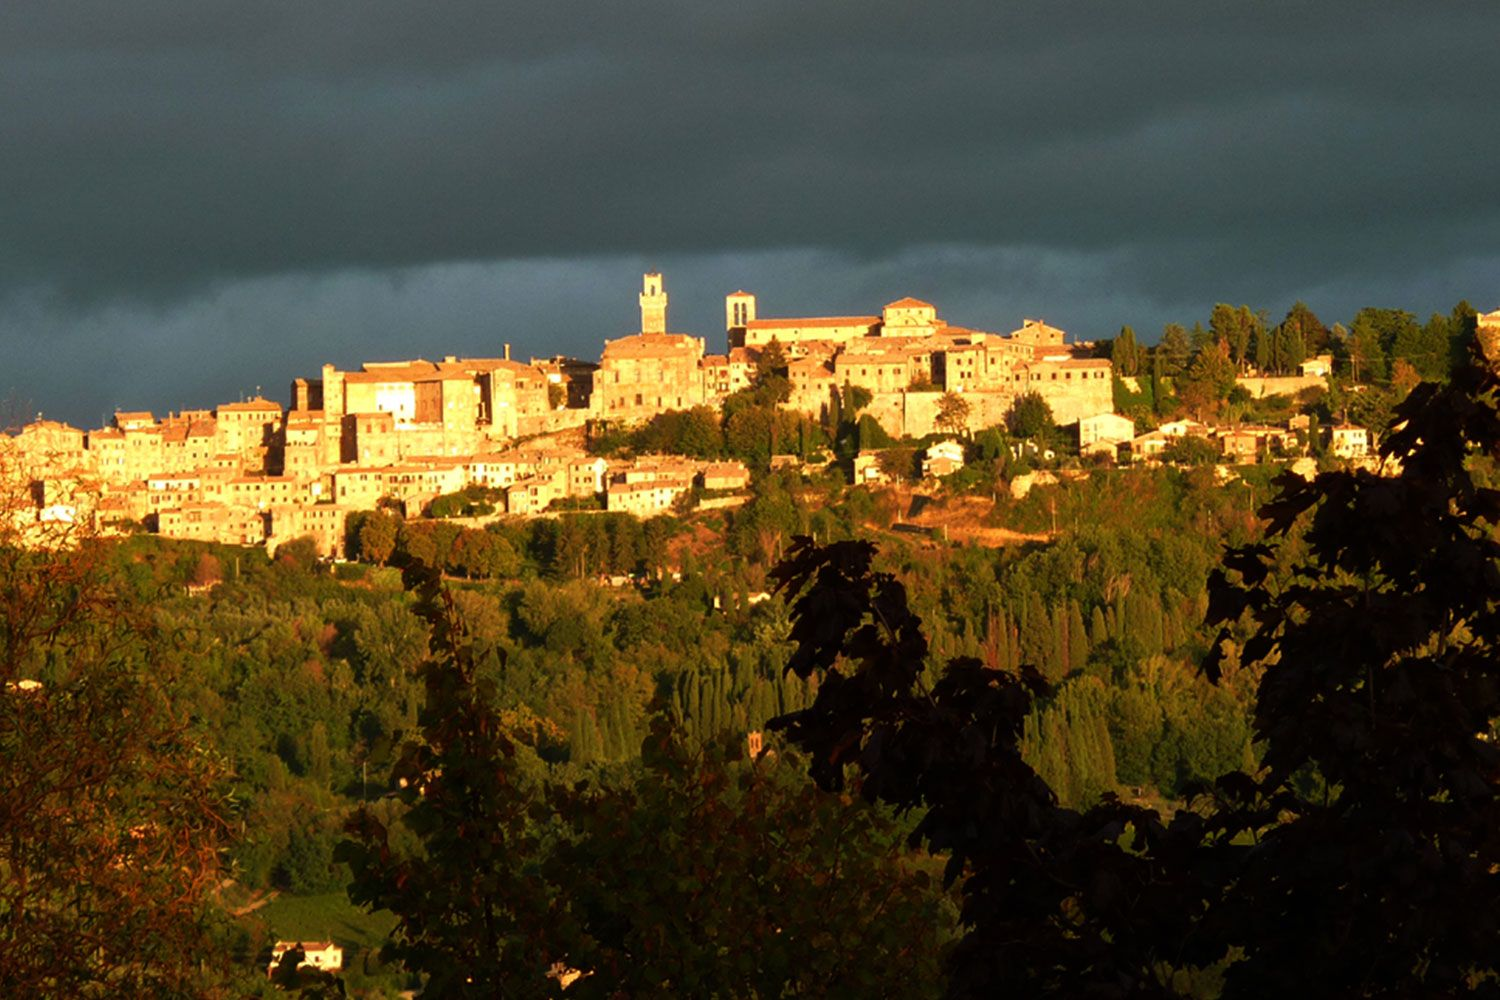 Montepulciano perched on its hill.